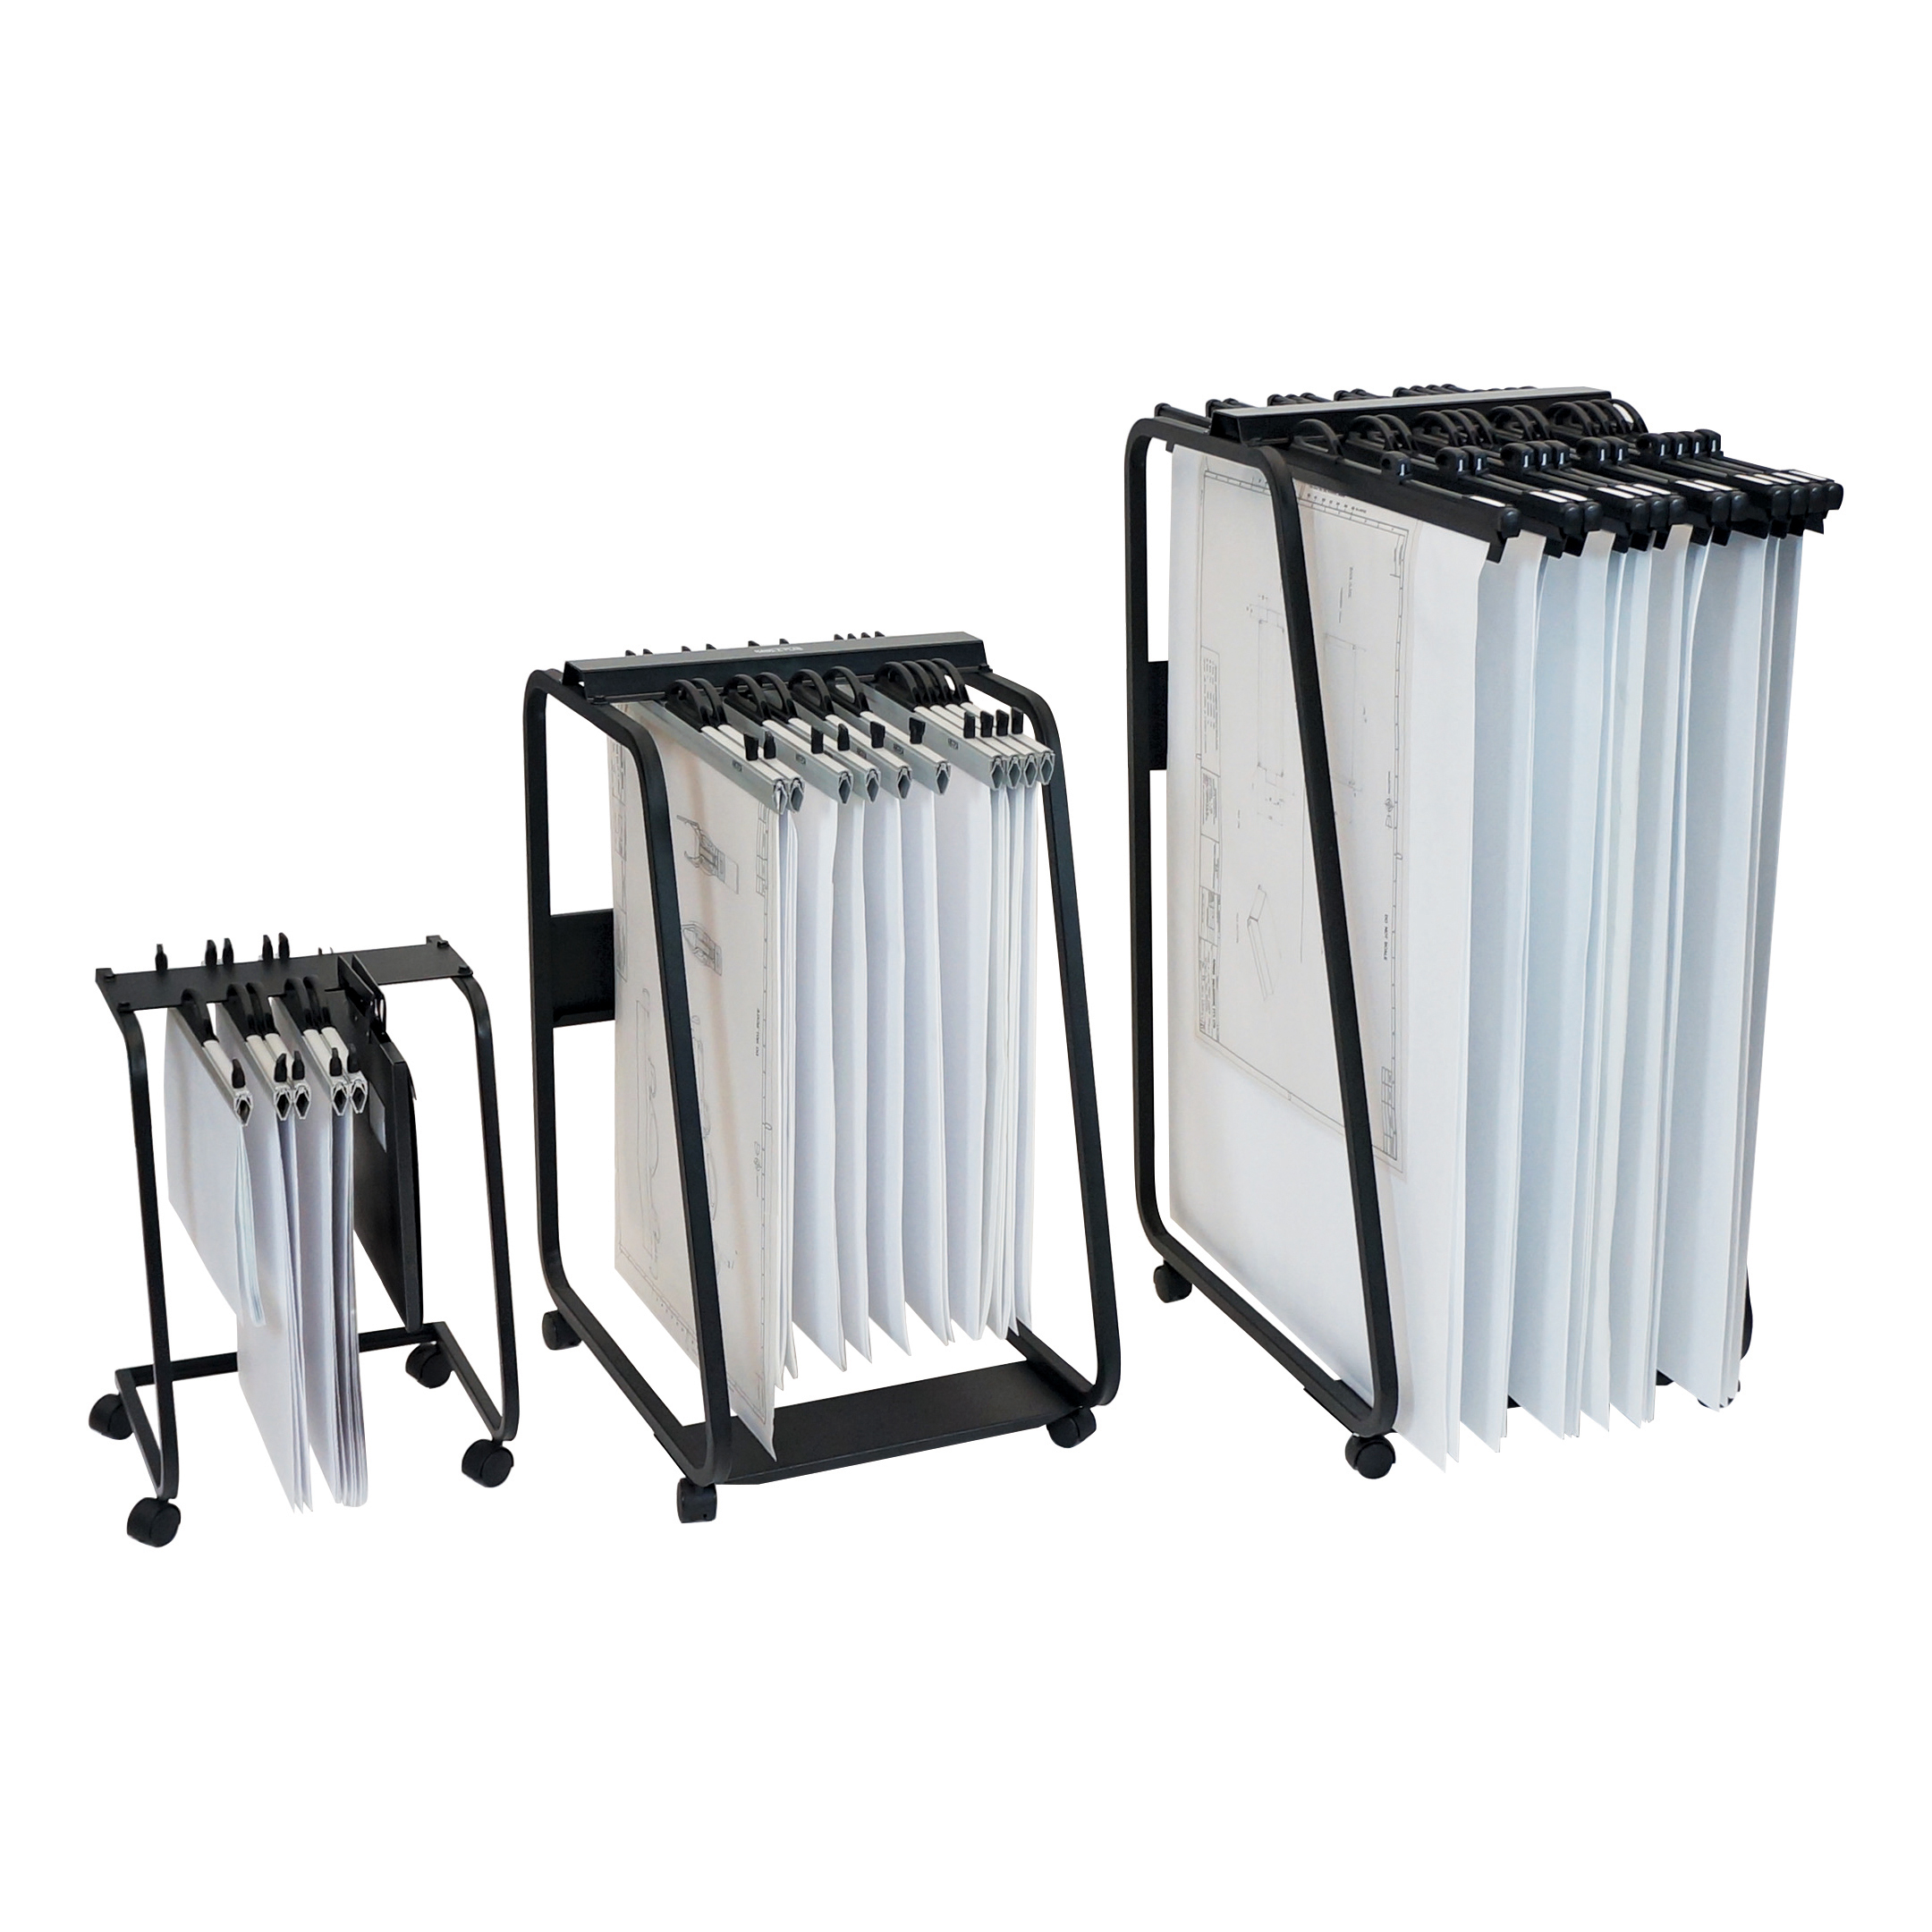 Drawing Holders & Accessories Arnos Hang-A-Plan General Front Load Trolley for Approx 20 Binders A1-A2-B1 W550xD730xH990mm Ref D061